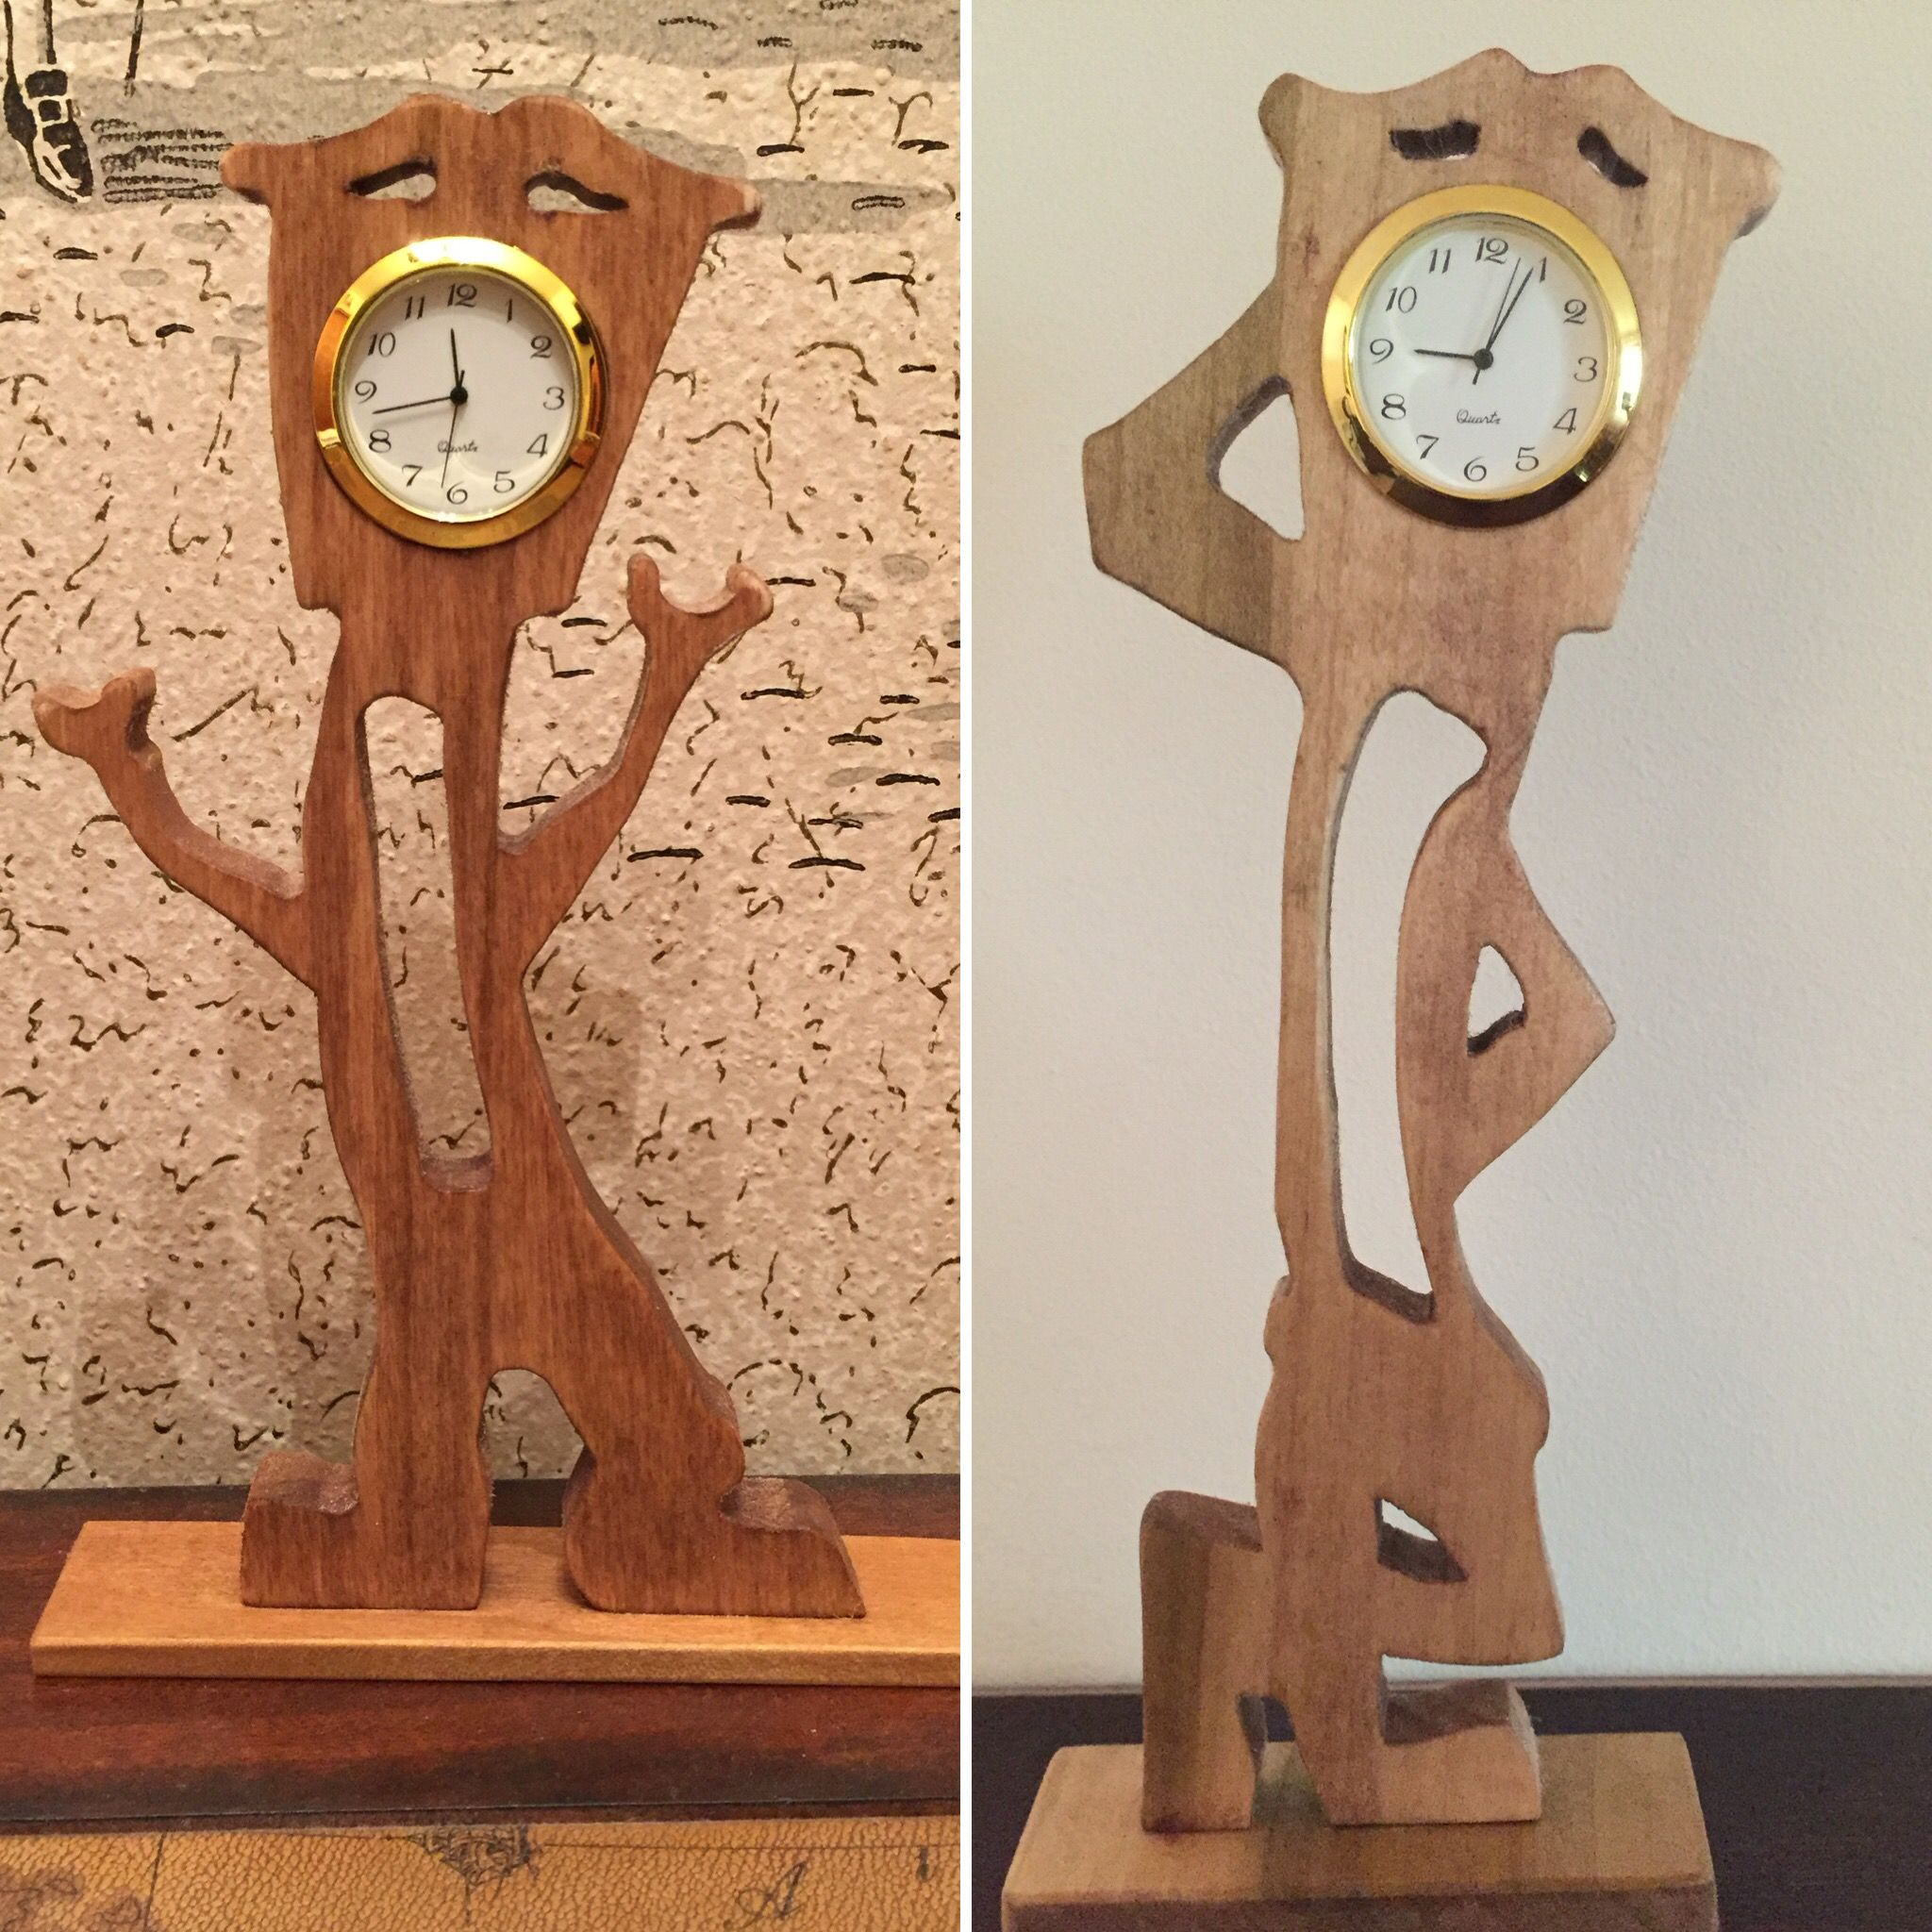 Pin by PaPaTink on PaPaTinks Toys | Wooden clock, Wood ...